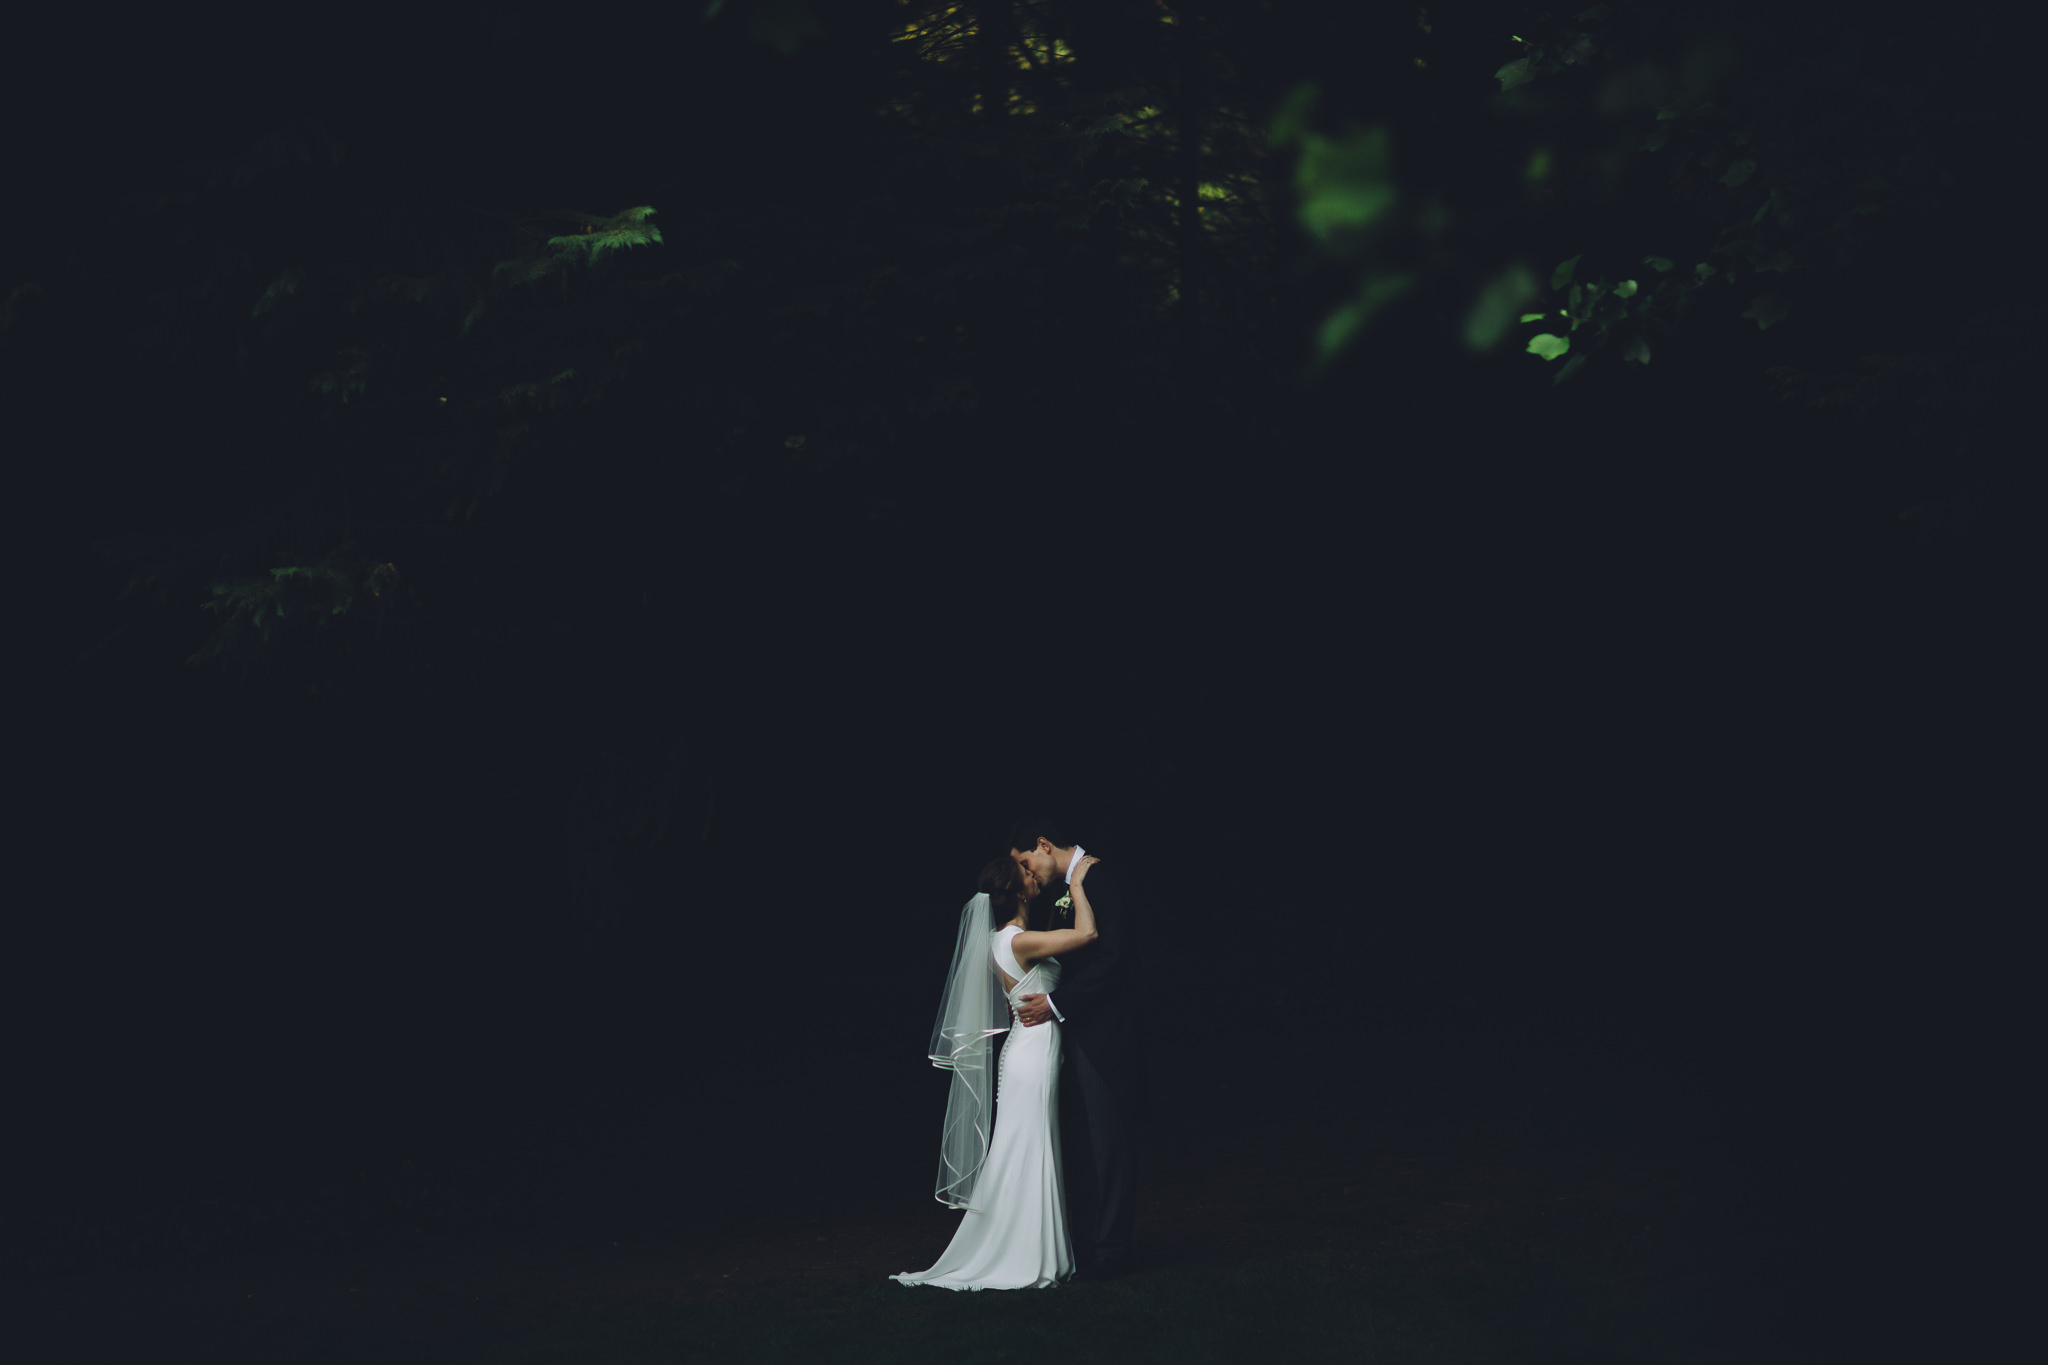 paul-marbrook-best-wedding-photographer-north-wales-101039